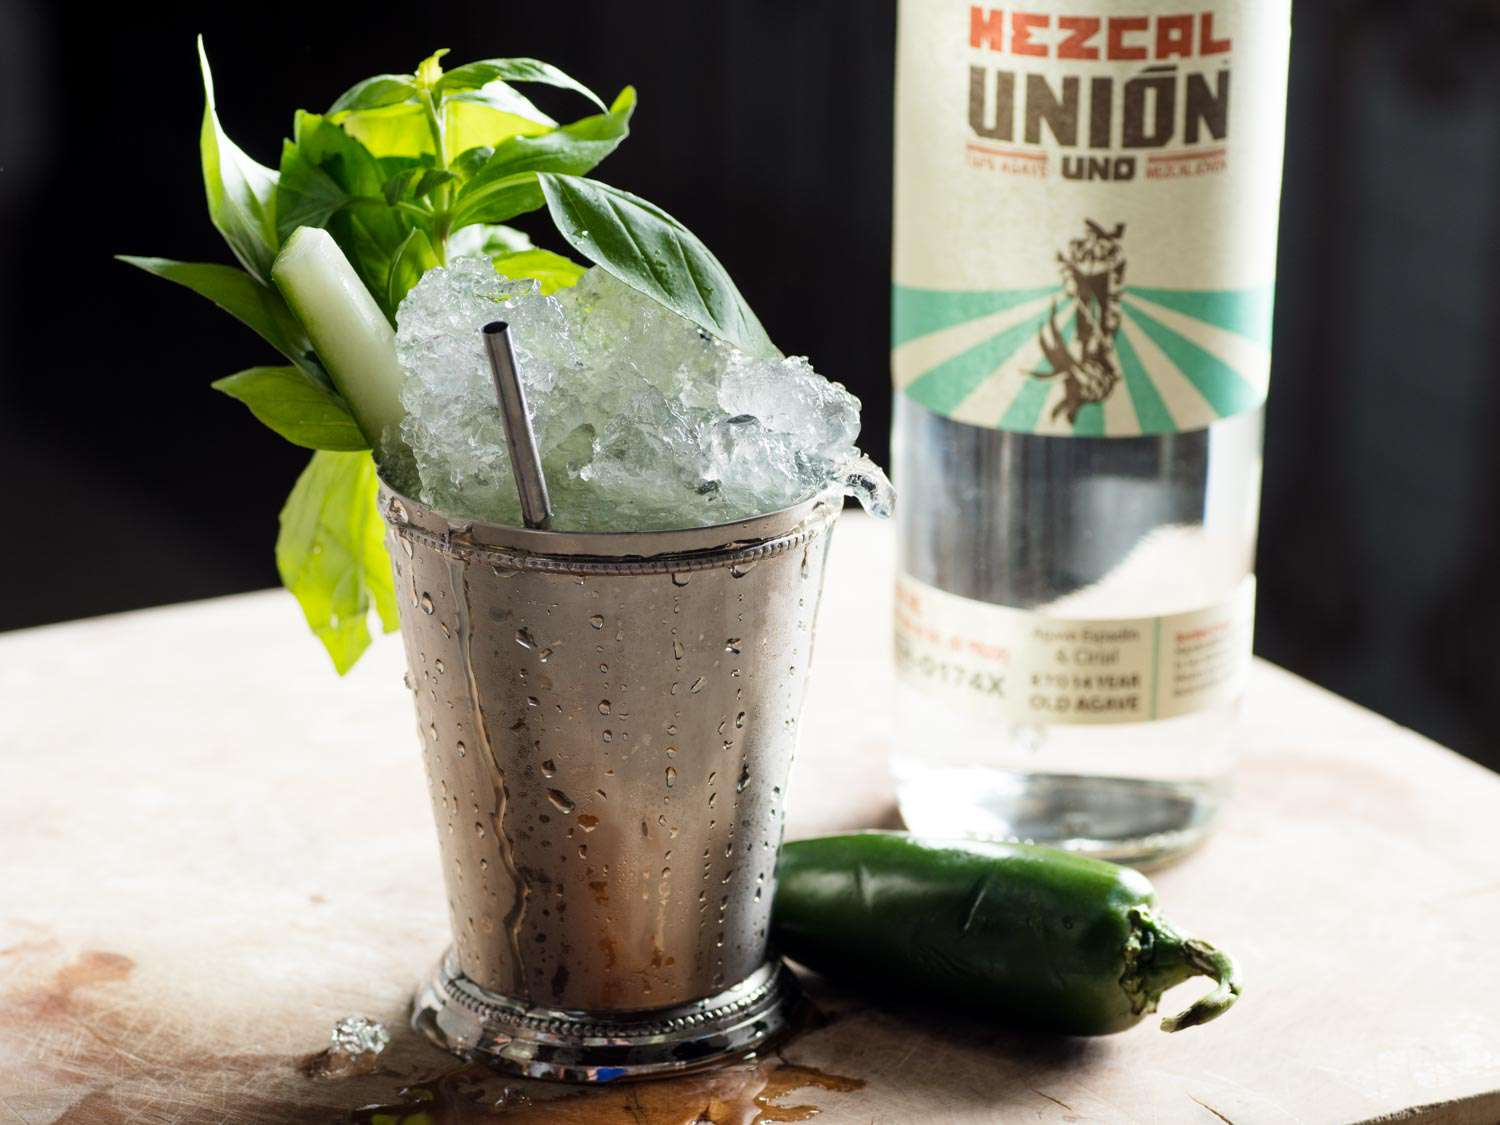 El Derby Ahumado (basil julep with mezcal, cucumber, jalapeño, and fresh basil) in a julep cup, next to a bottle of mezcal